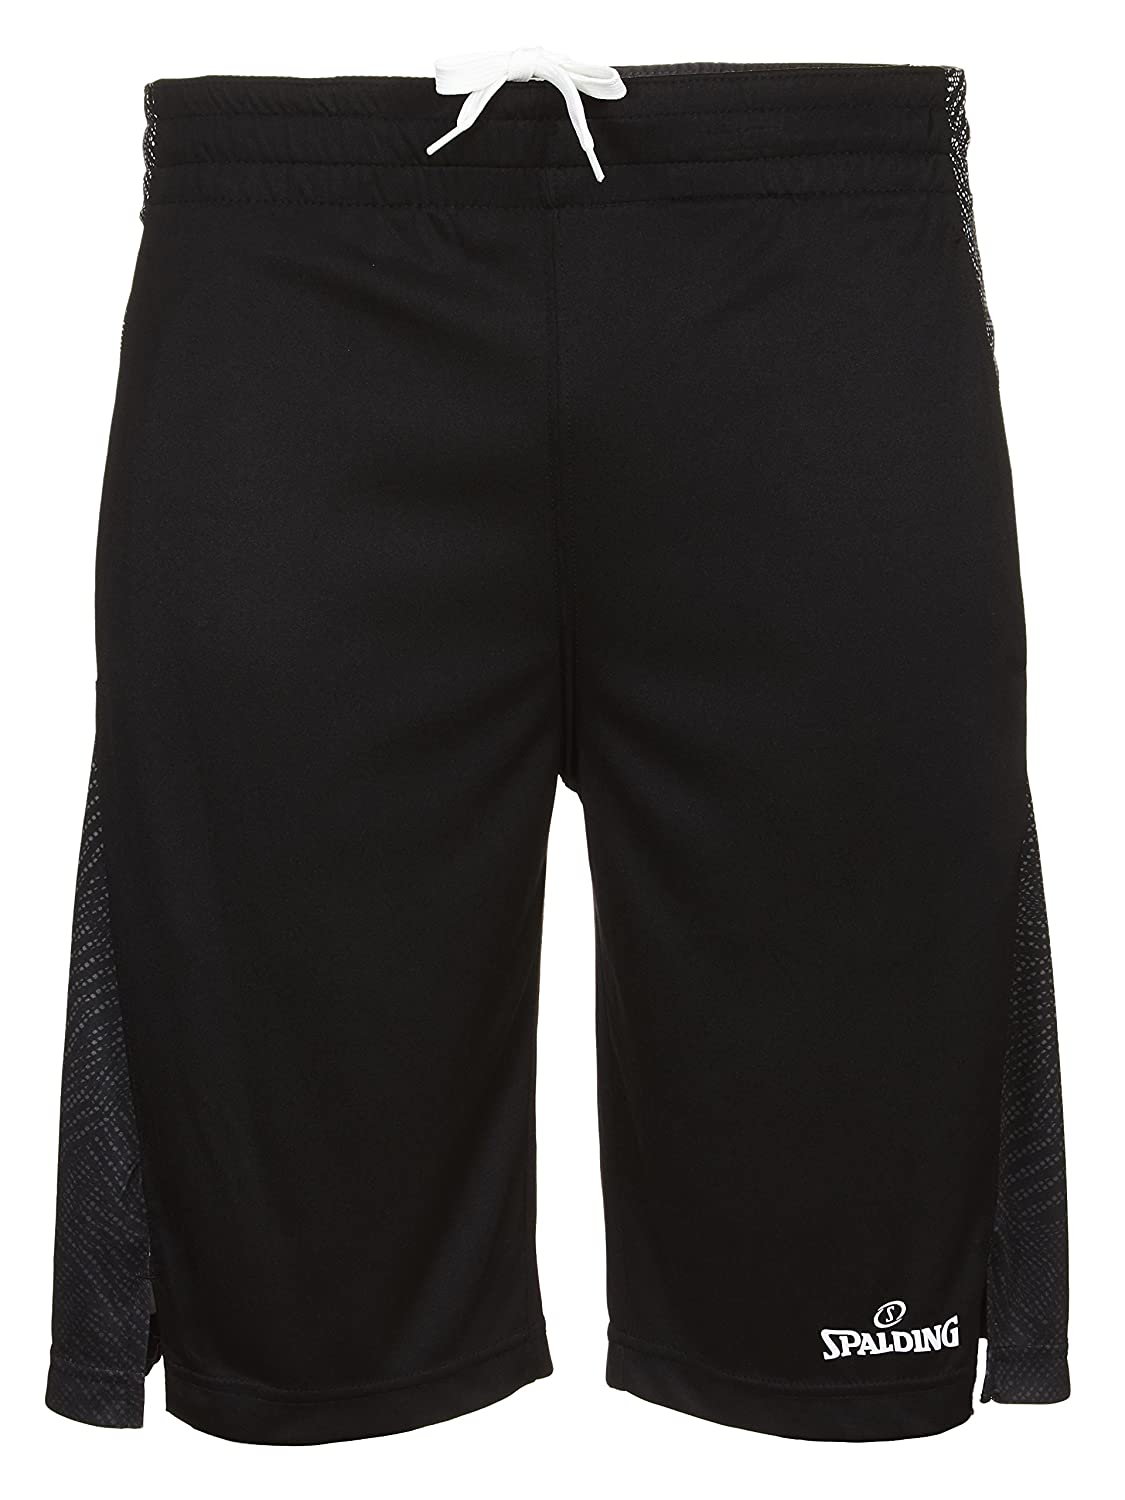 Spalding Mens Active Athletic Basketball Gym Shorts Gym Clothes Shorts 11